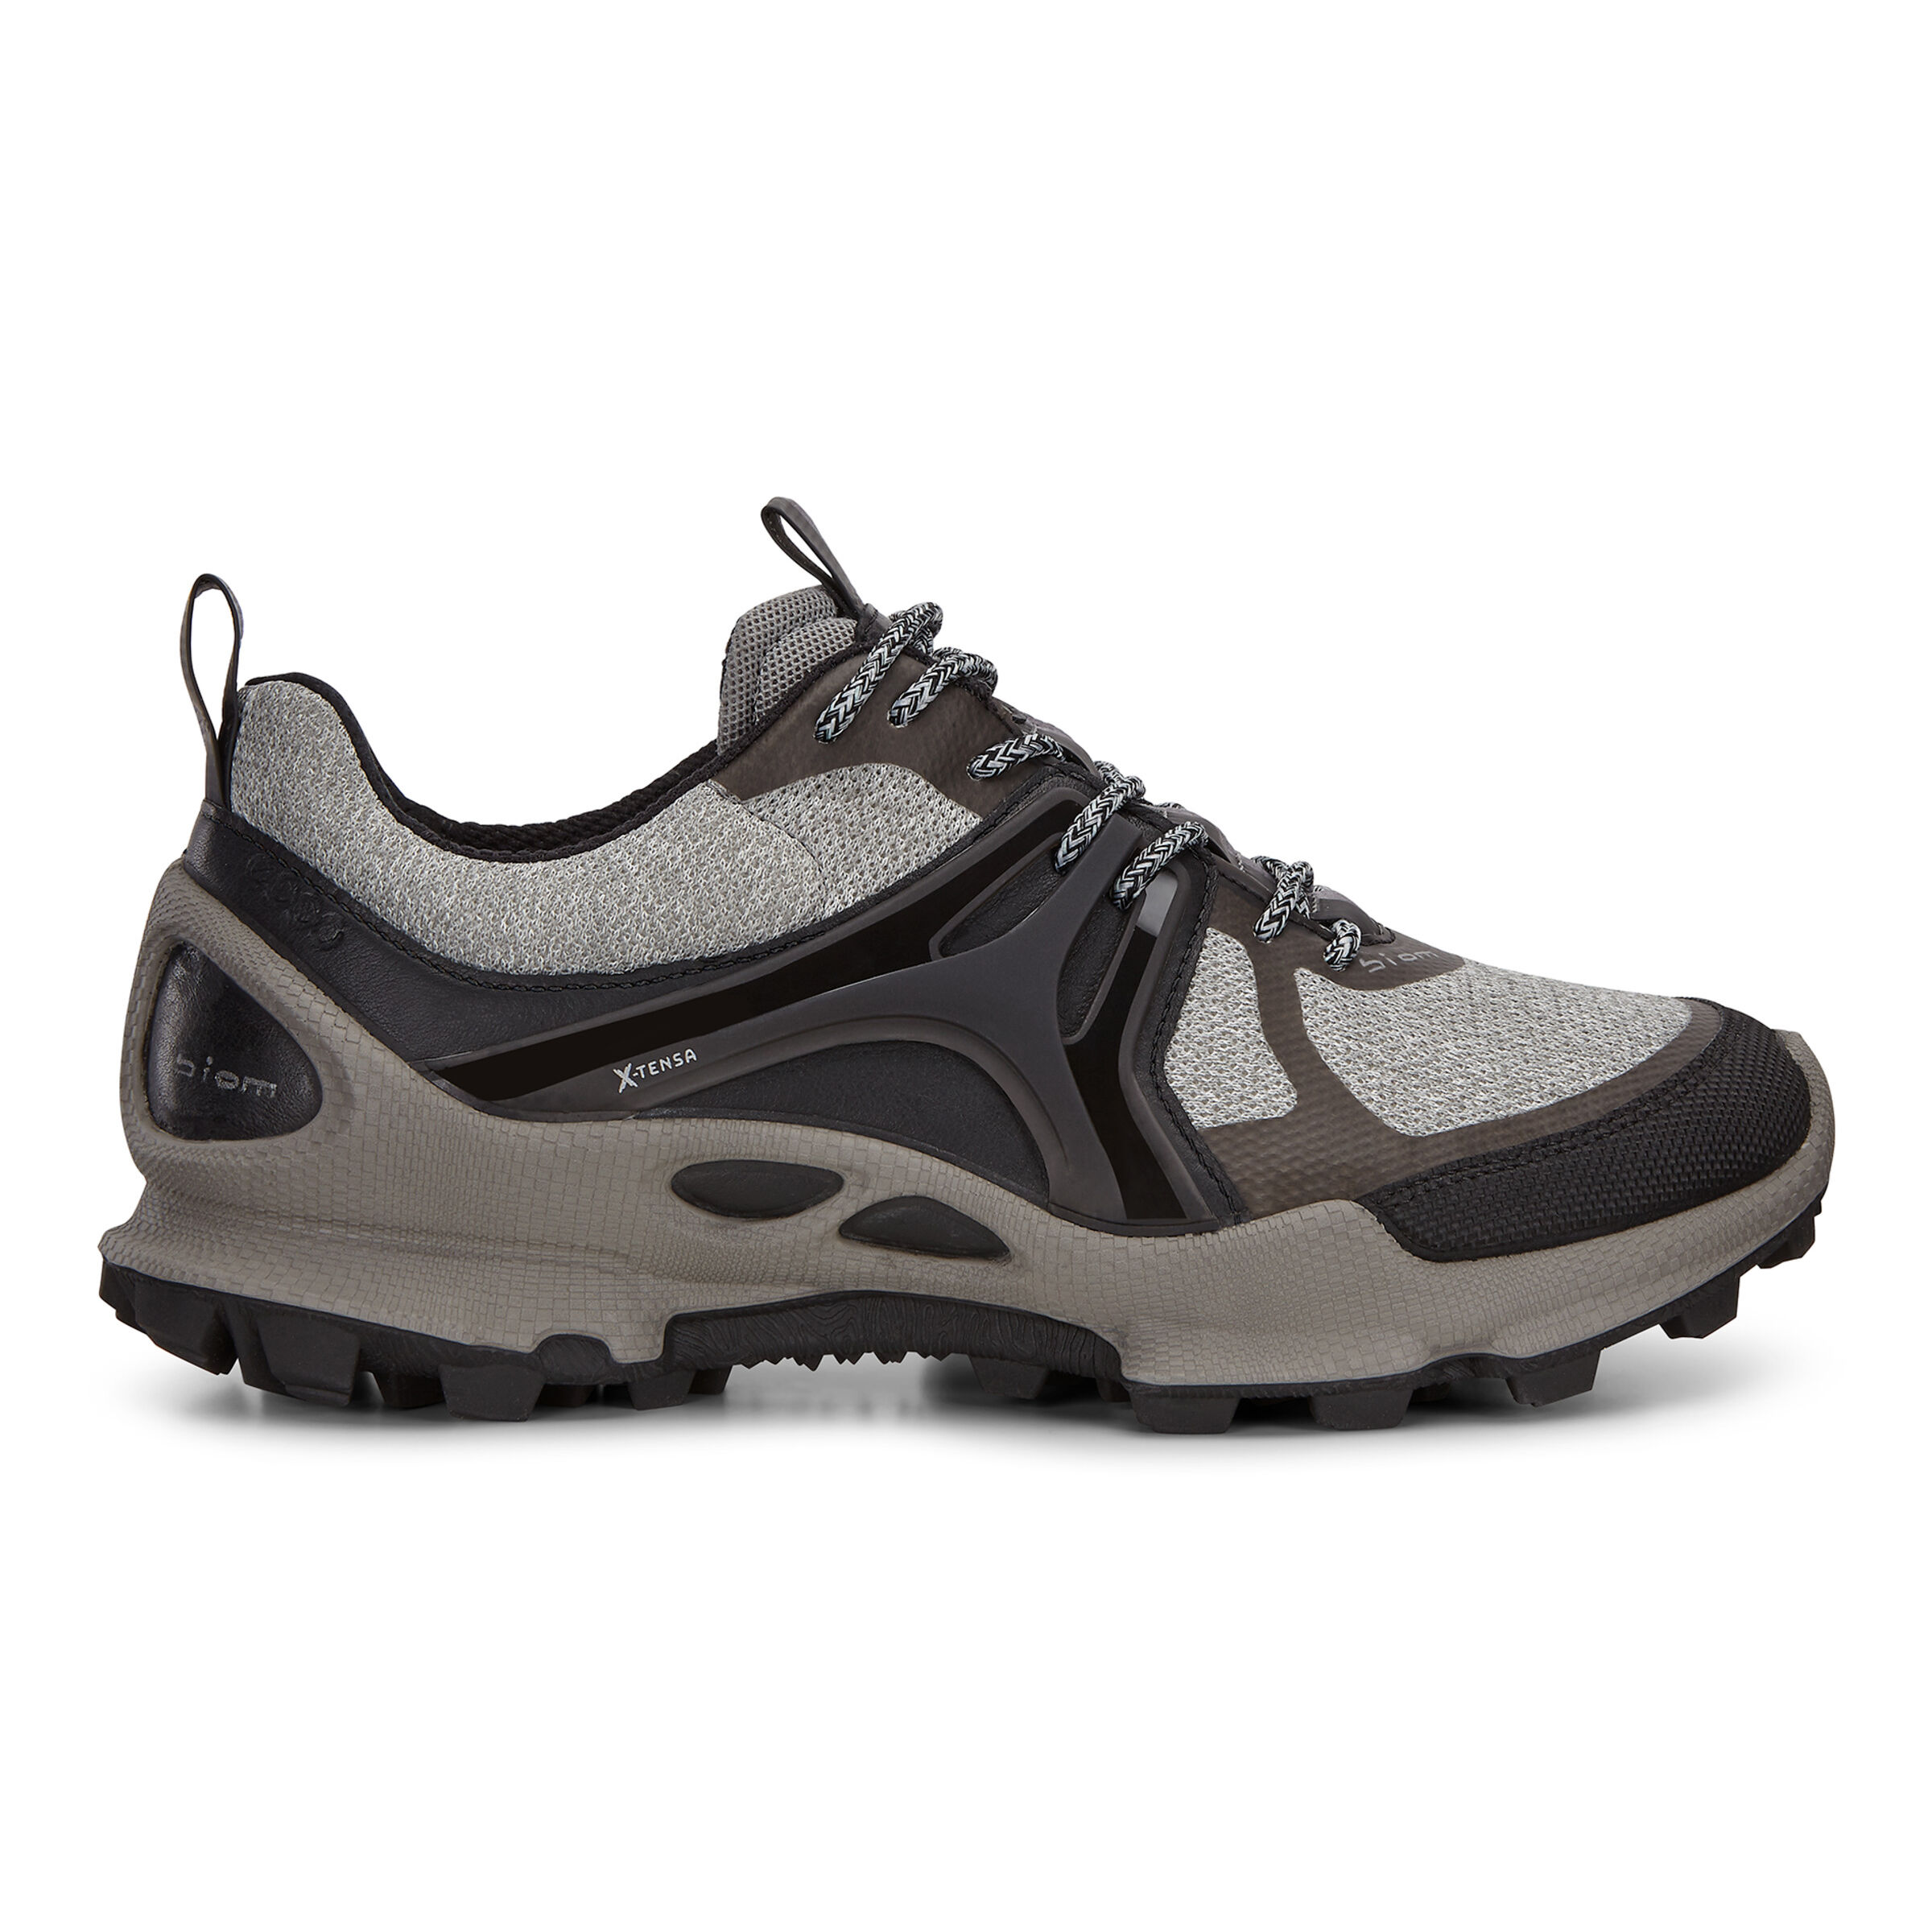 ECCO® Shoes, Boots, Sandals, Golf Shoes